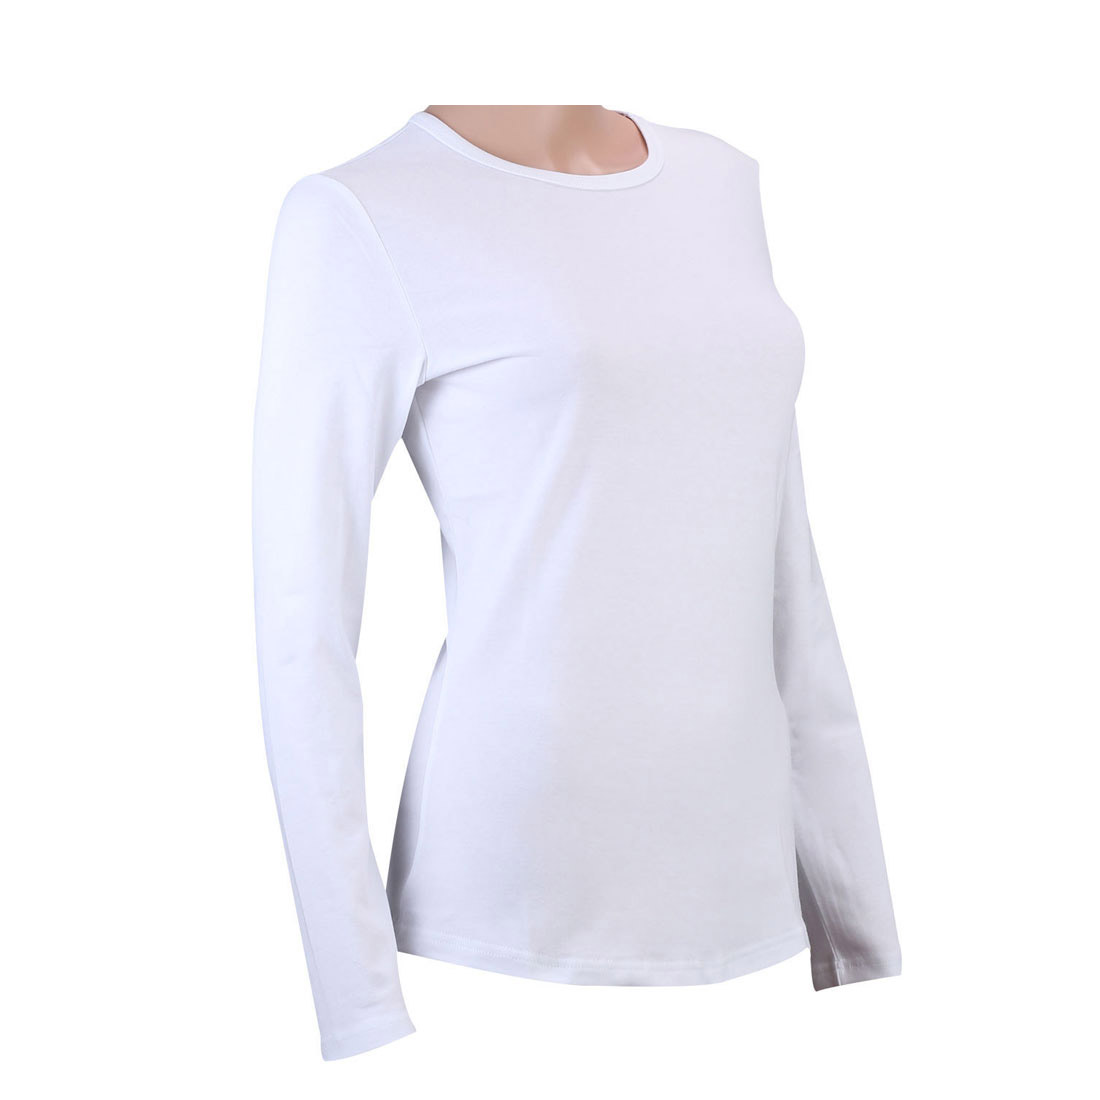 100 Cotton Womens Ladies T Shirts Long Sleeve Plain Shirt